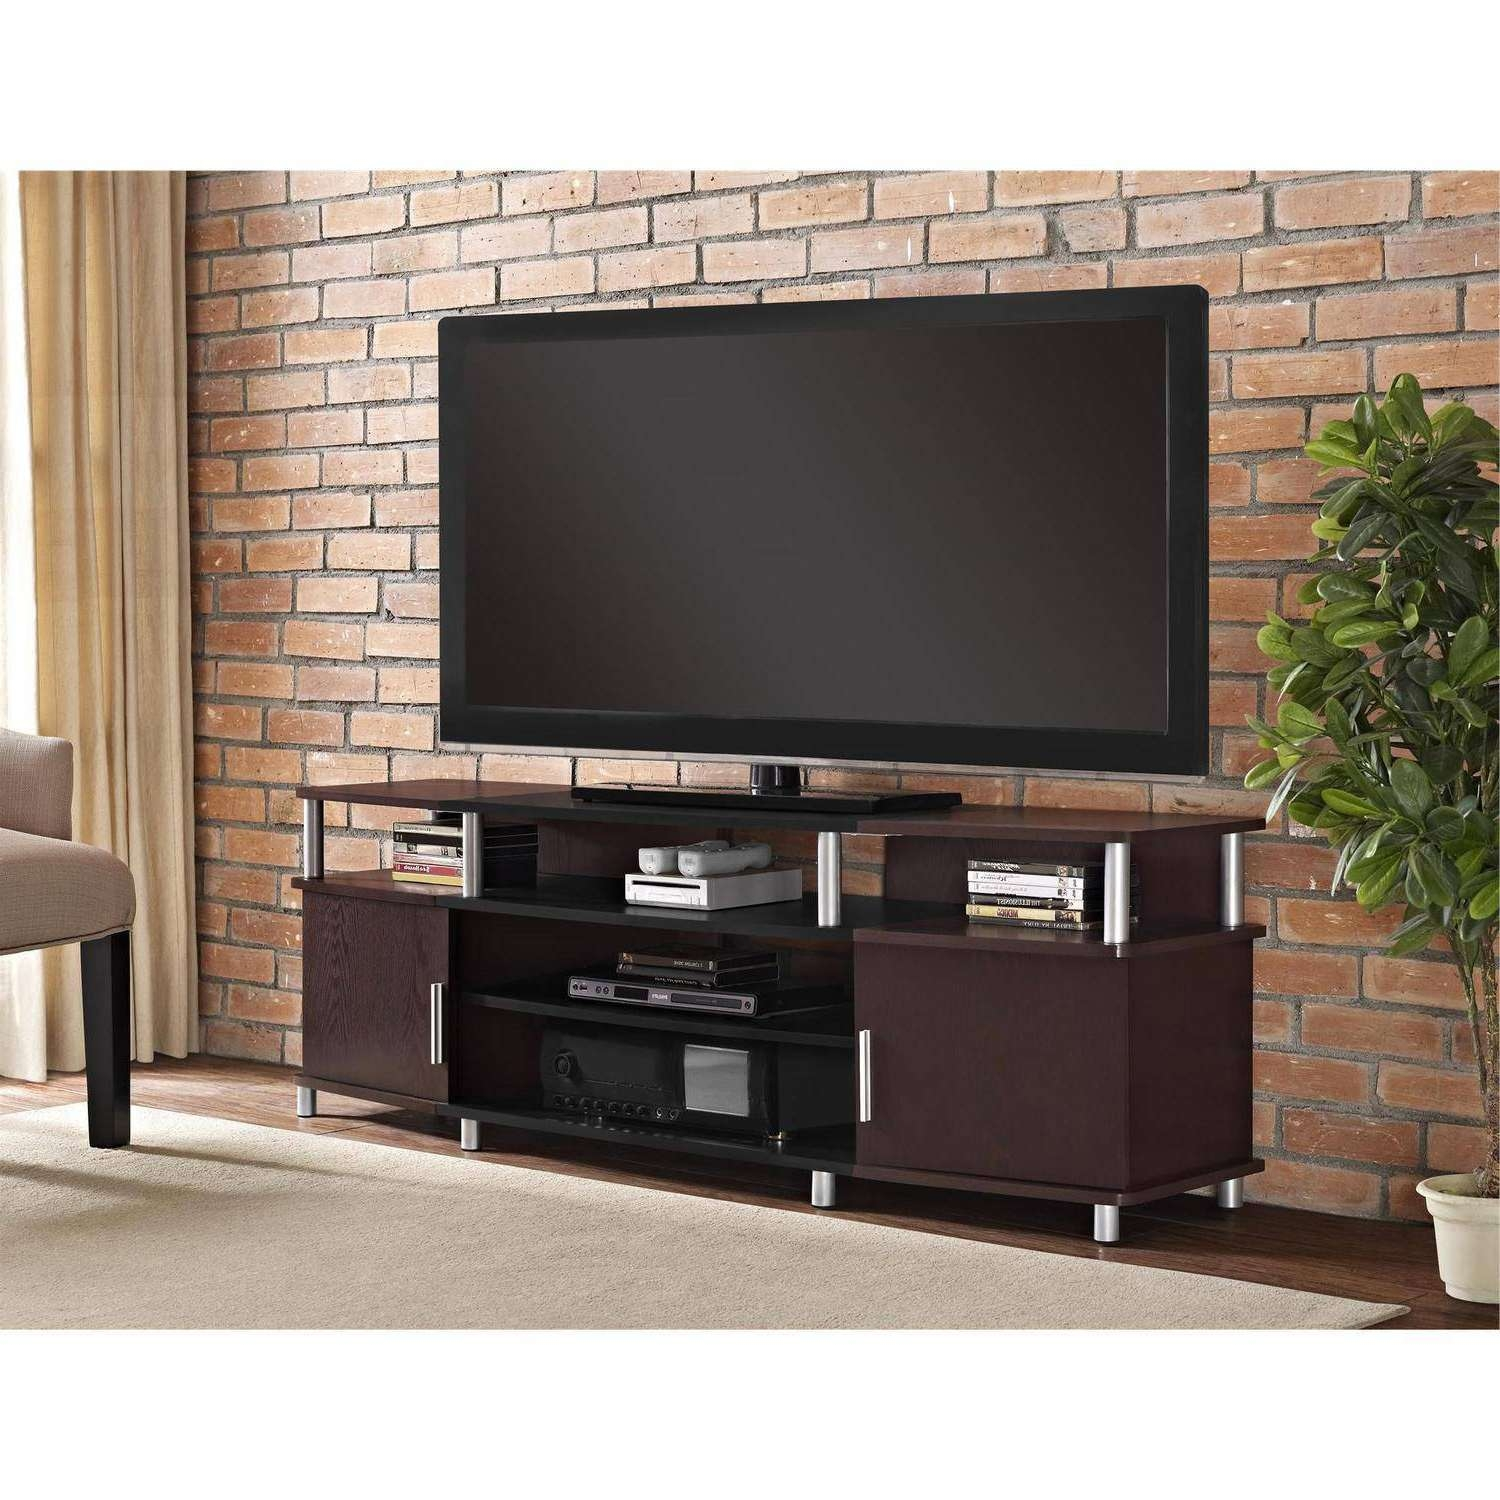 Tv Stands & Entertainment Centers – Walmart For Tv Stands 40 Inches Wide (View 13 of 15)